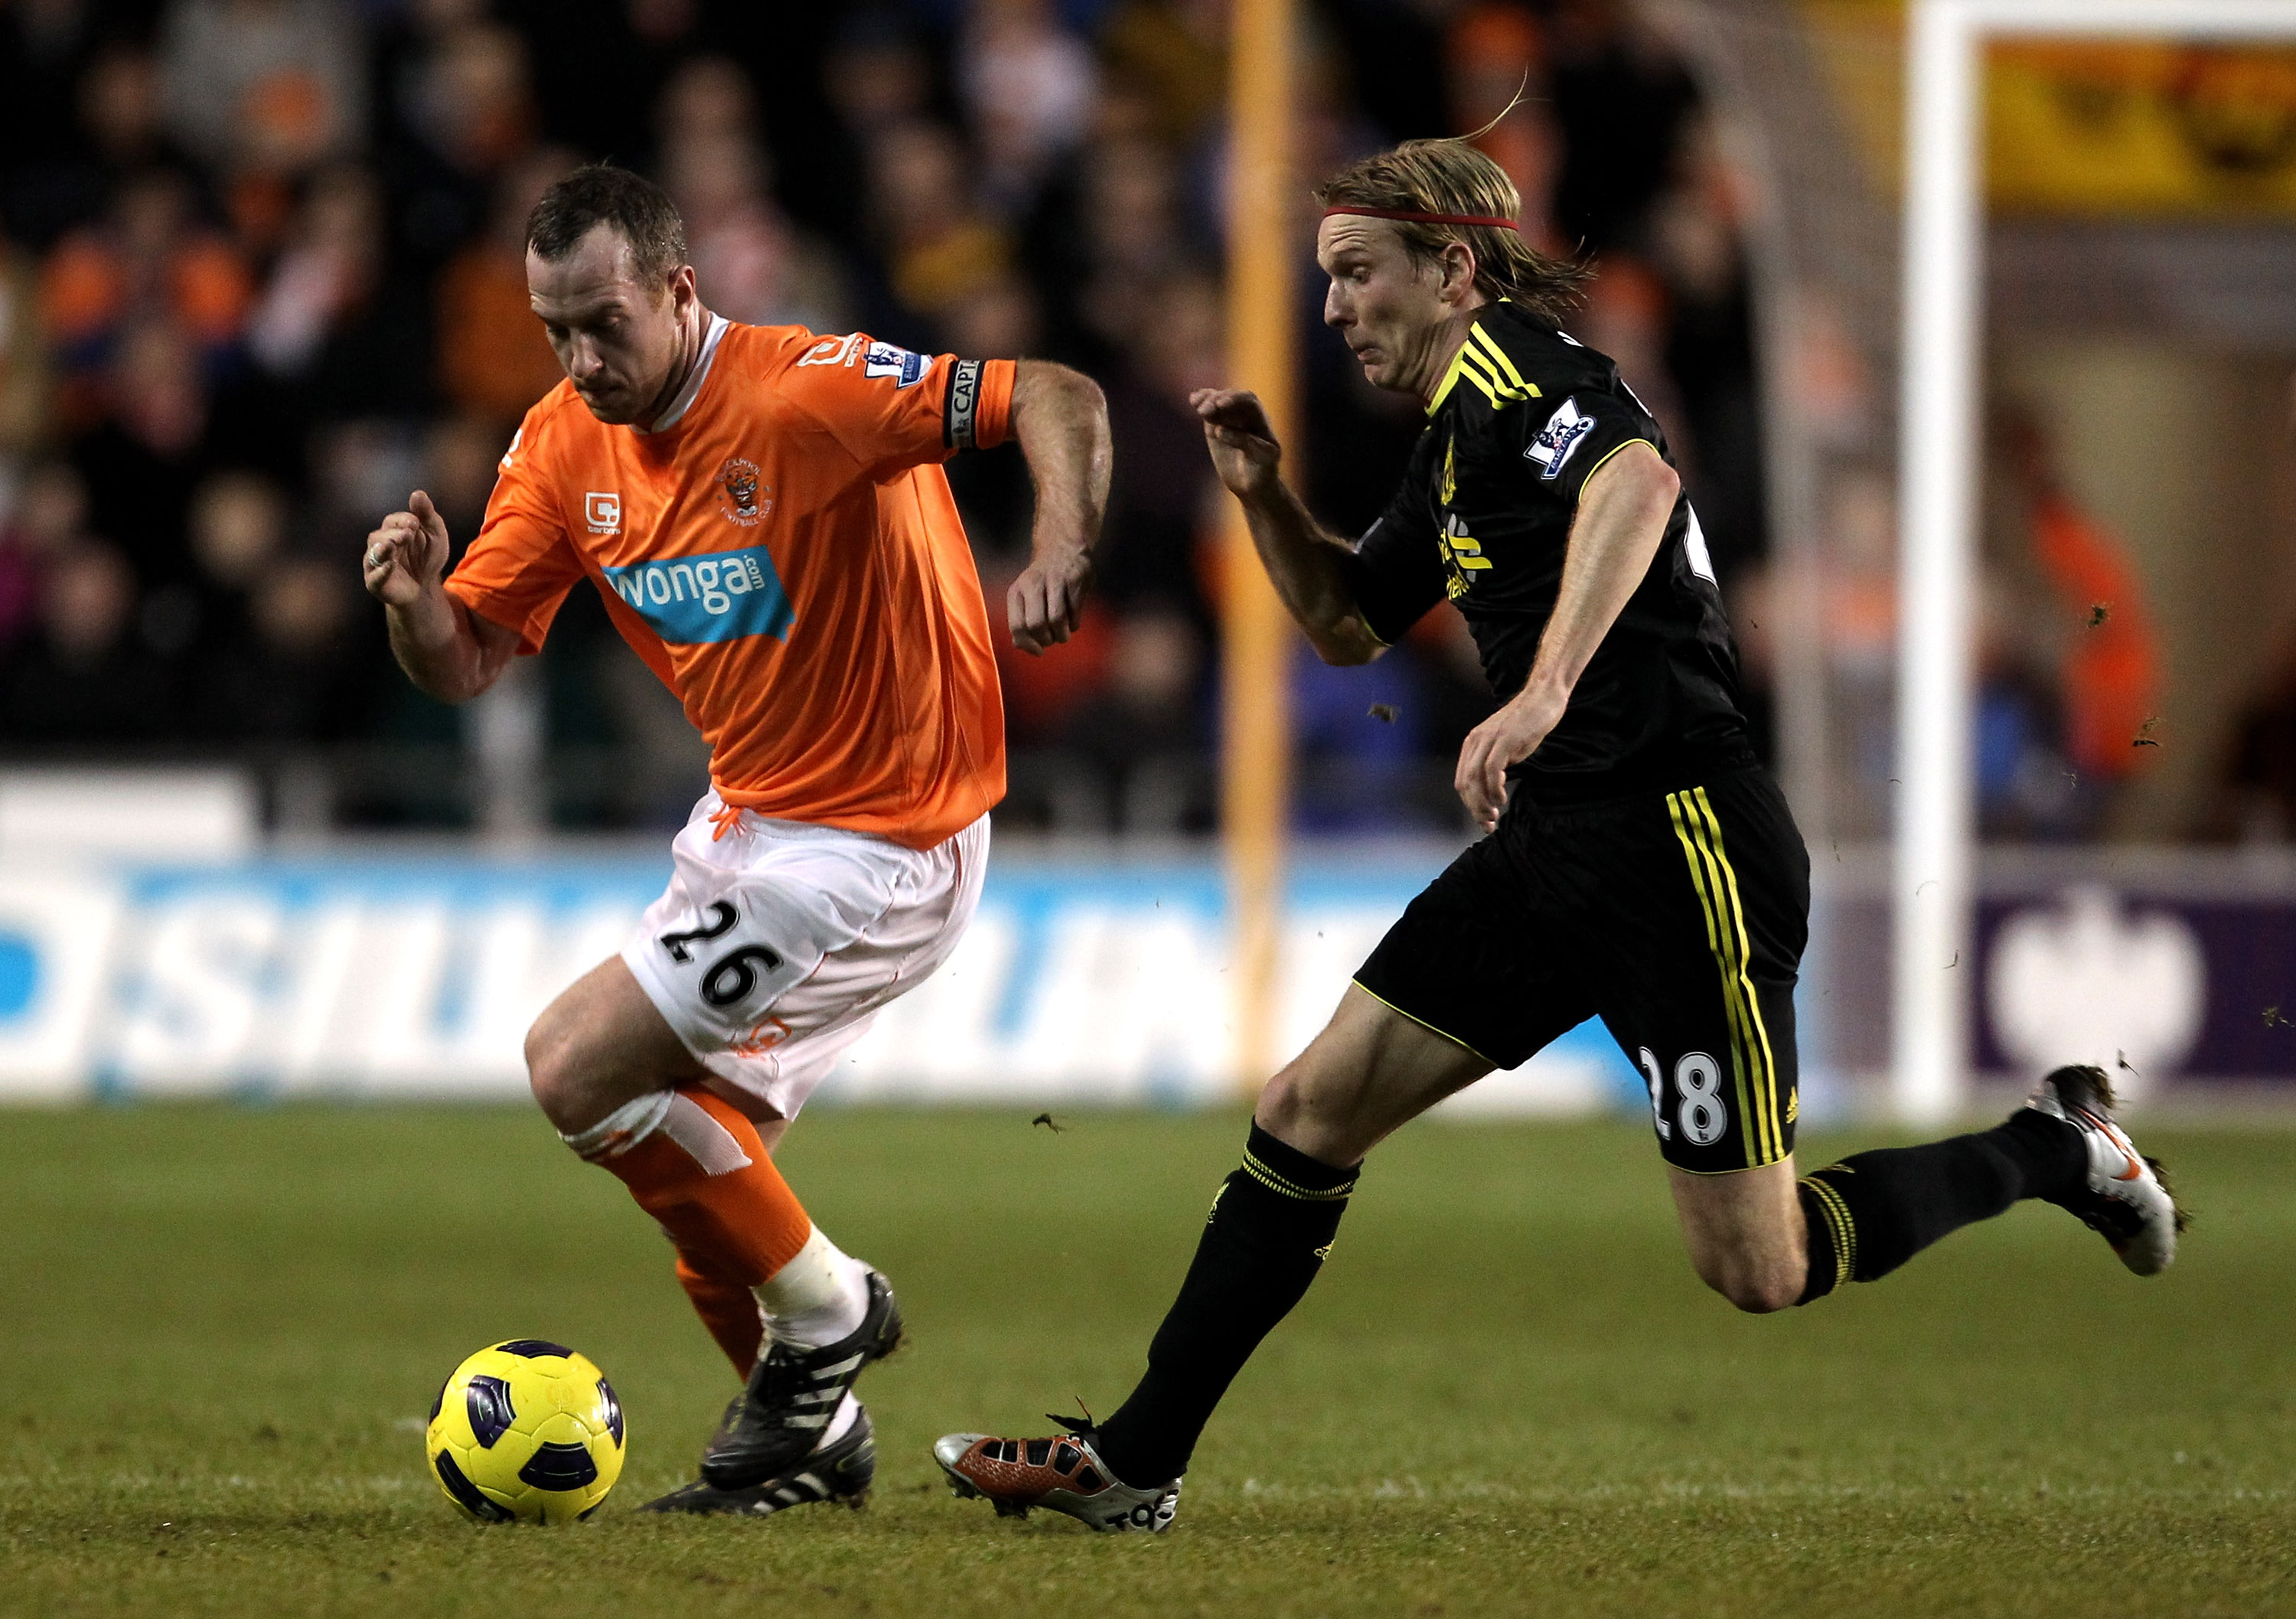 BLACKPOOL, ENGLAND - JANUARY 12:  Charlie Adam of Blackpool is pursued by Christian Poulsen of Liverpool during the Barclays Premier League match between Blackpool and Liverpool at Bloomfield Road on January 12, 2011 in Blackpool, England.  (Photo by Alex